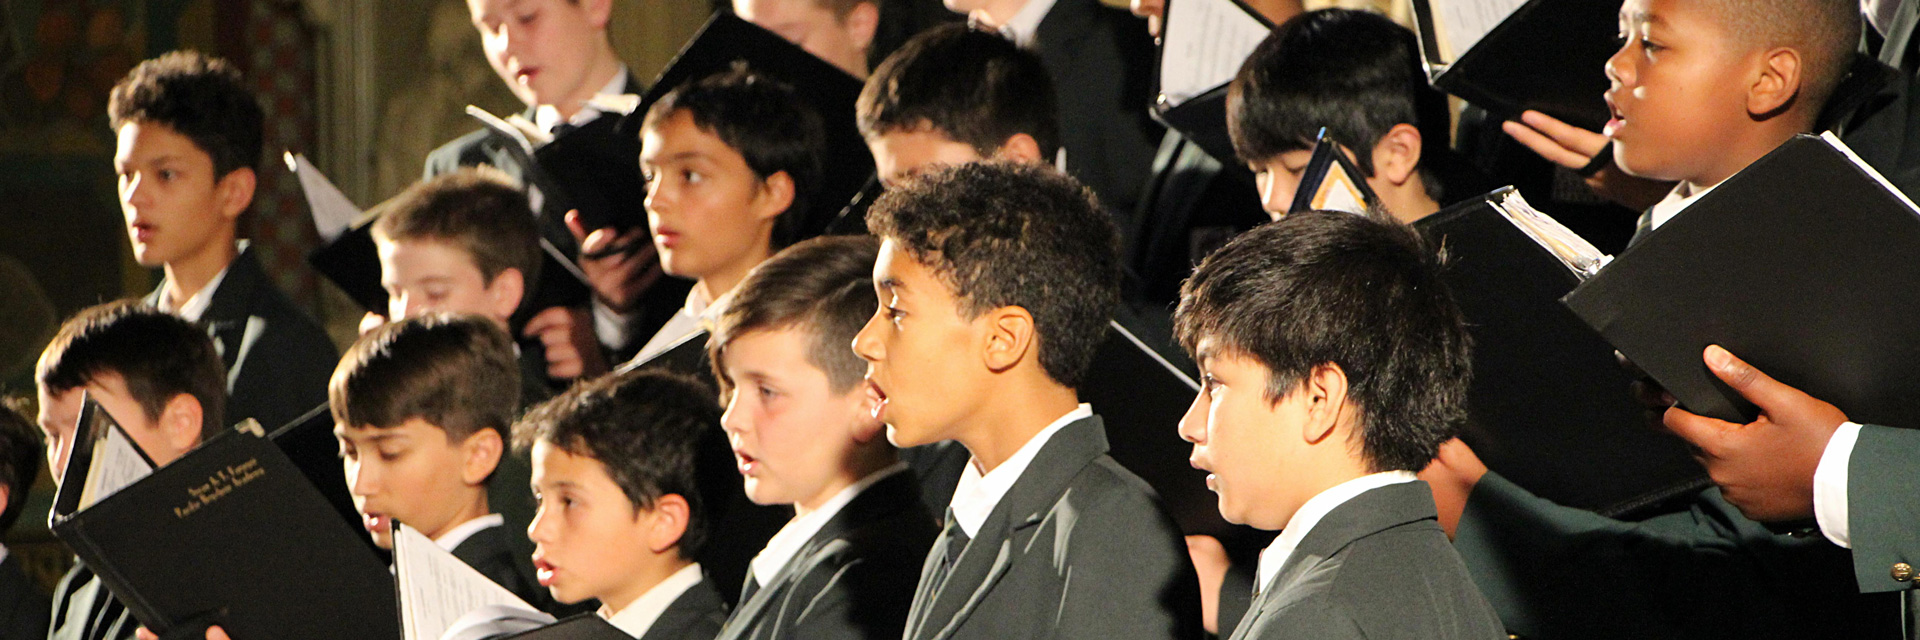 Our Choirs – Pacific Boychoir Academy